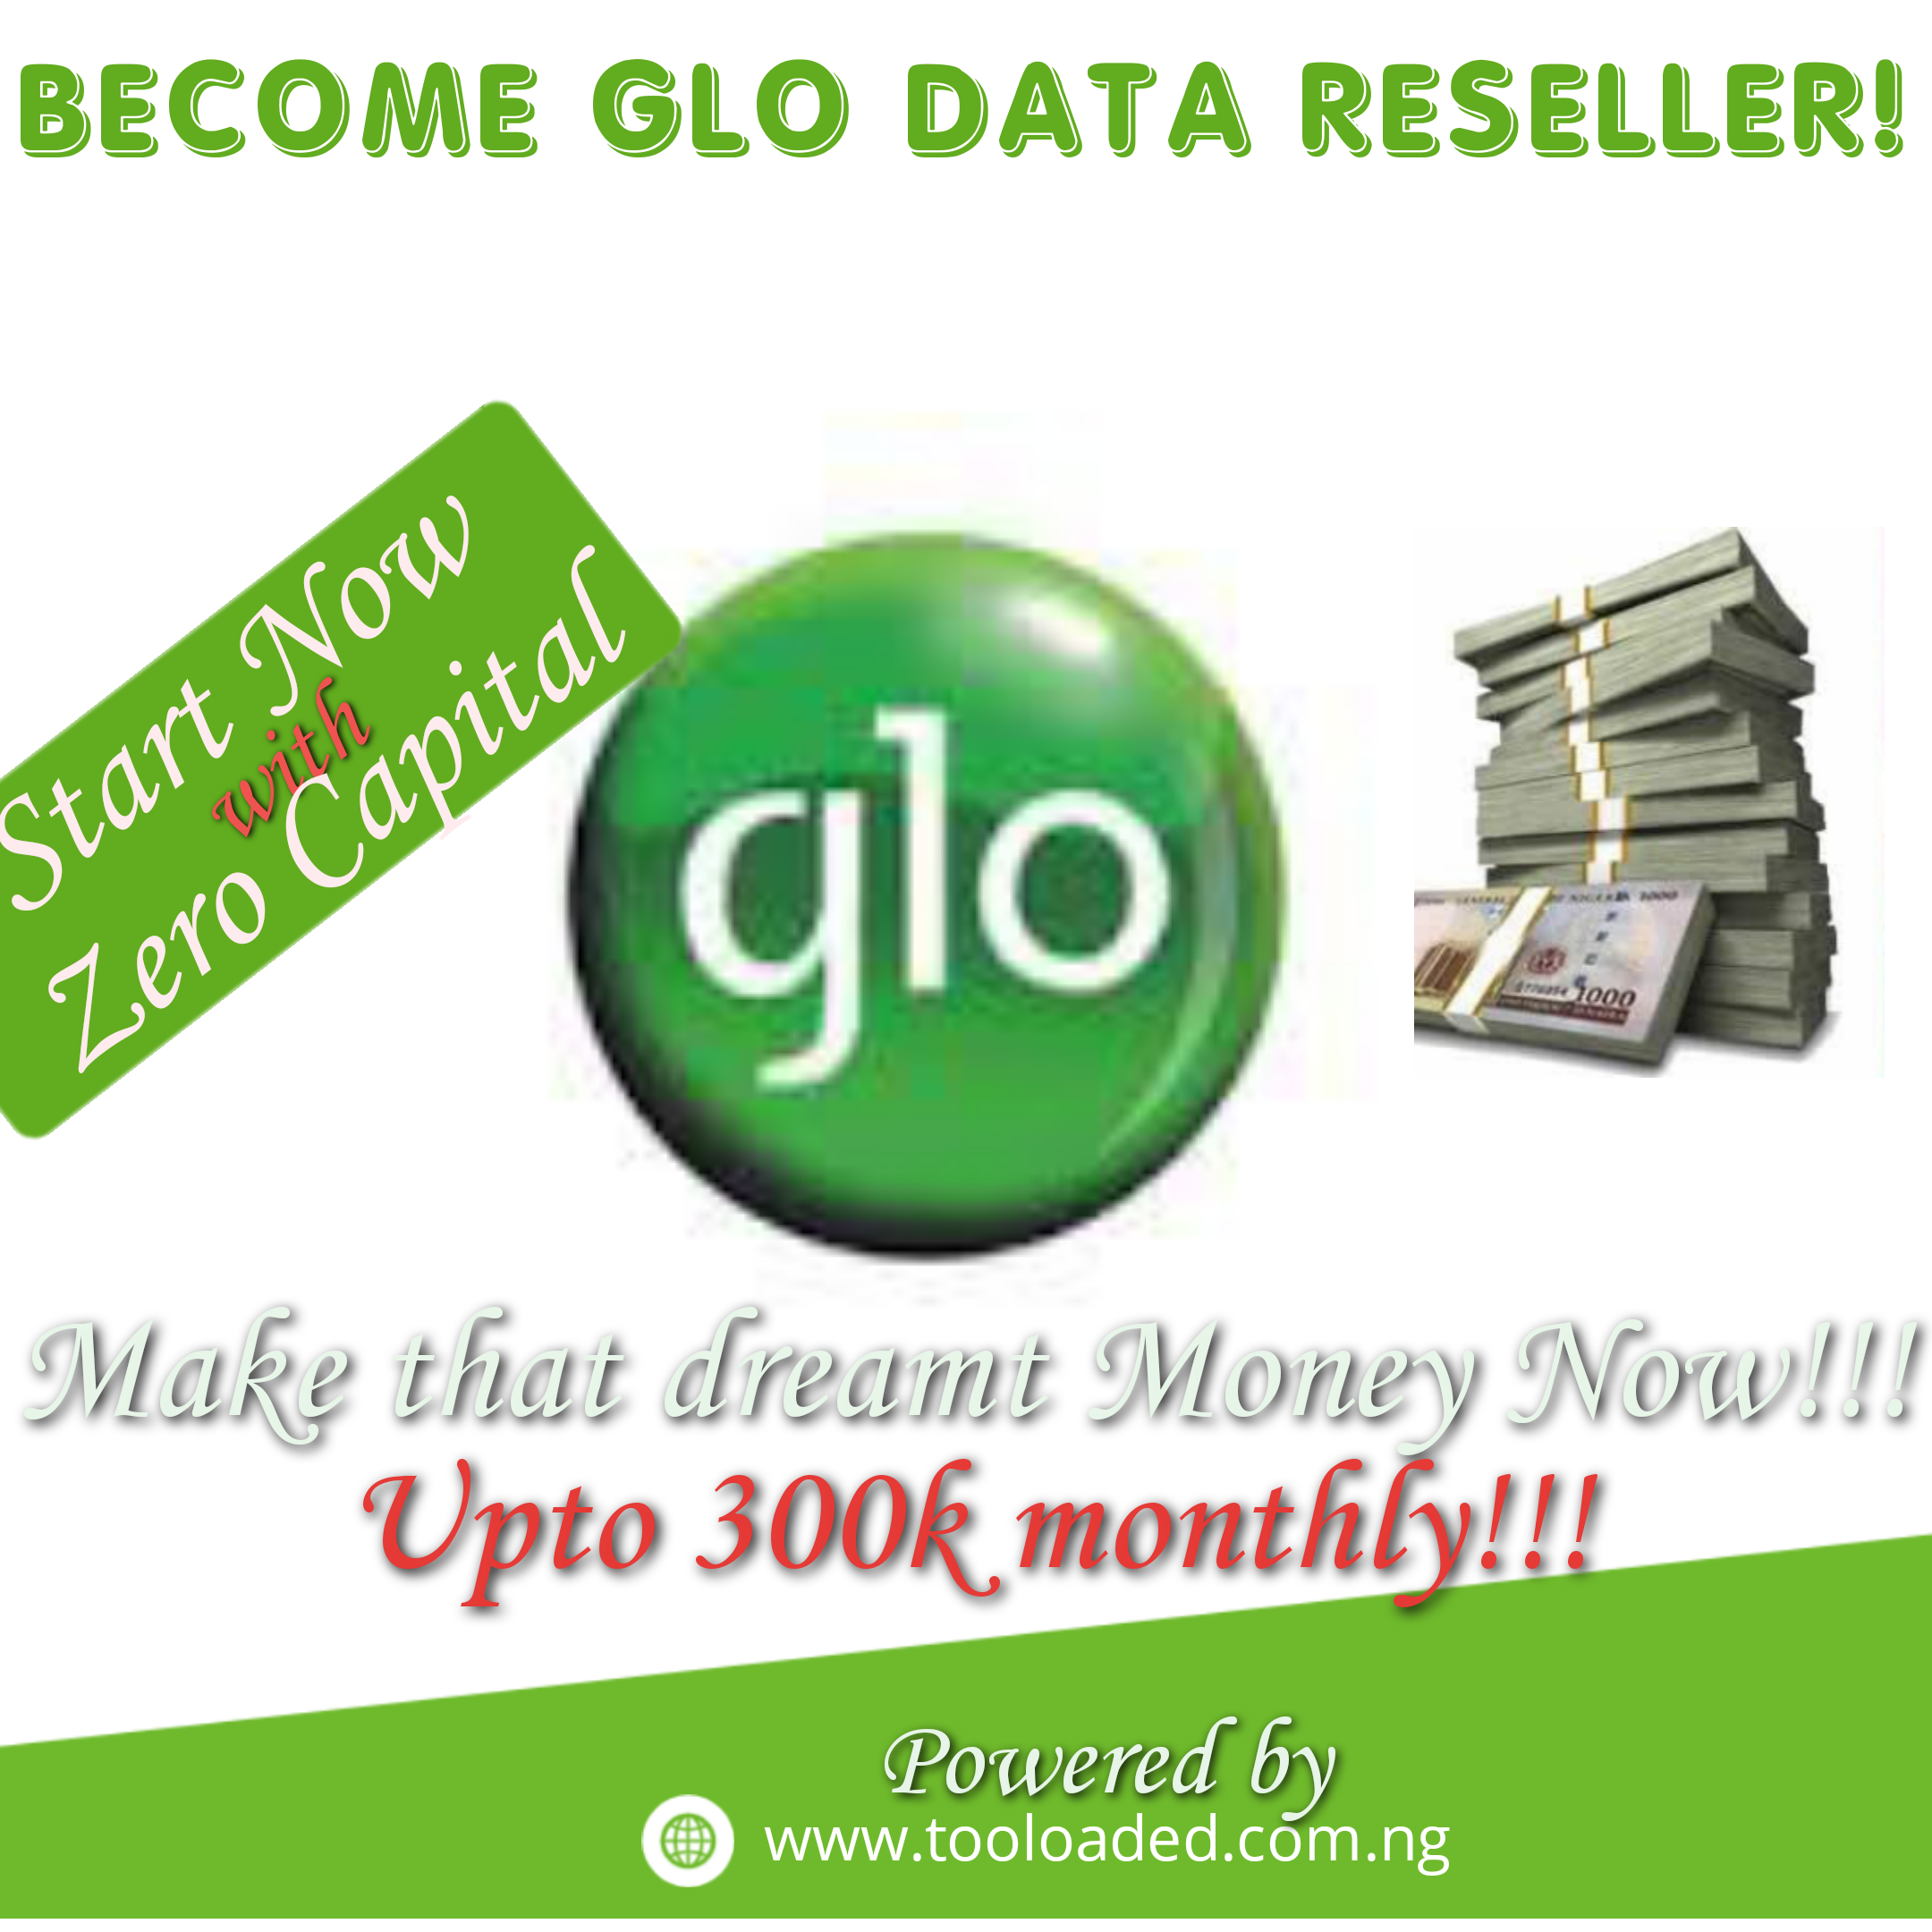 Become Glo Smart Data Reseller! Make up to 300k/month!!!